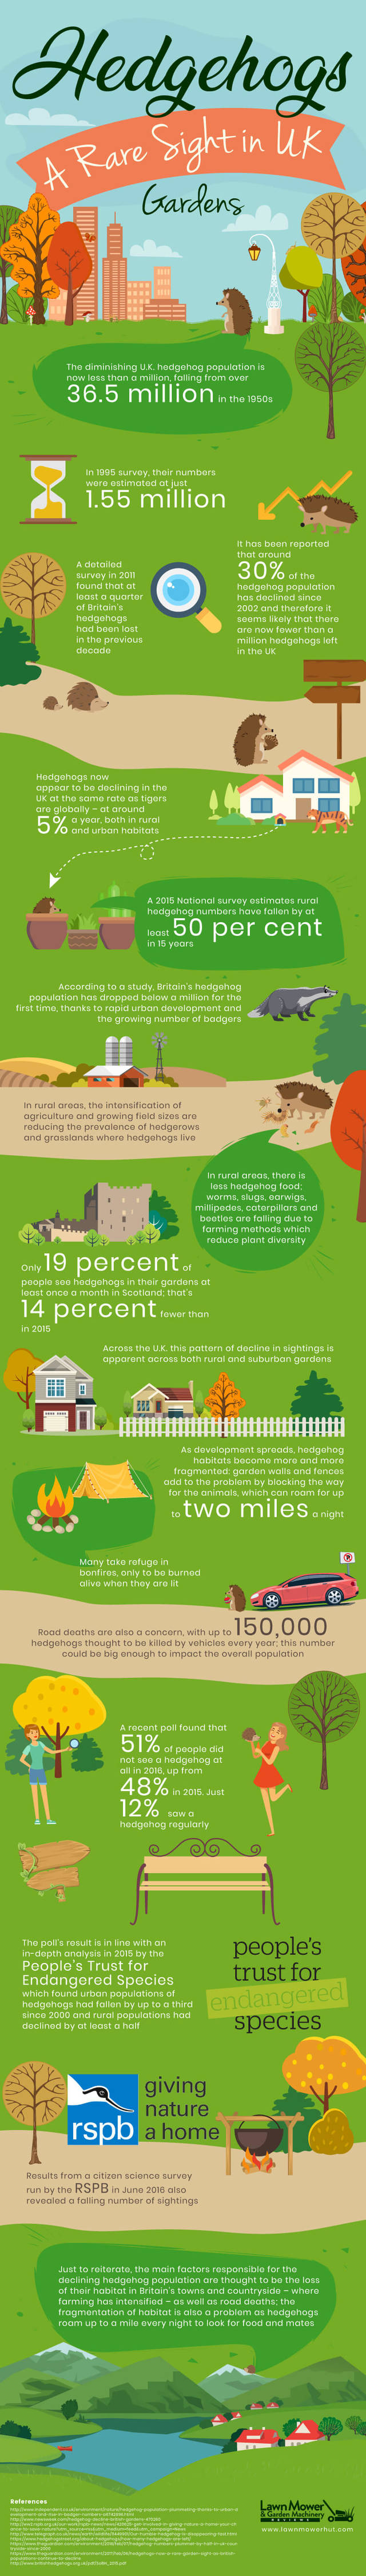 Uk hedgehog decline infographic